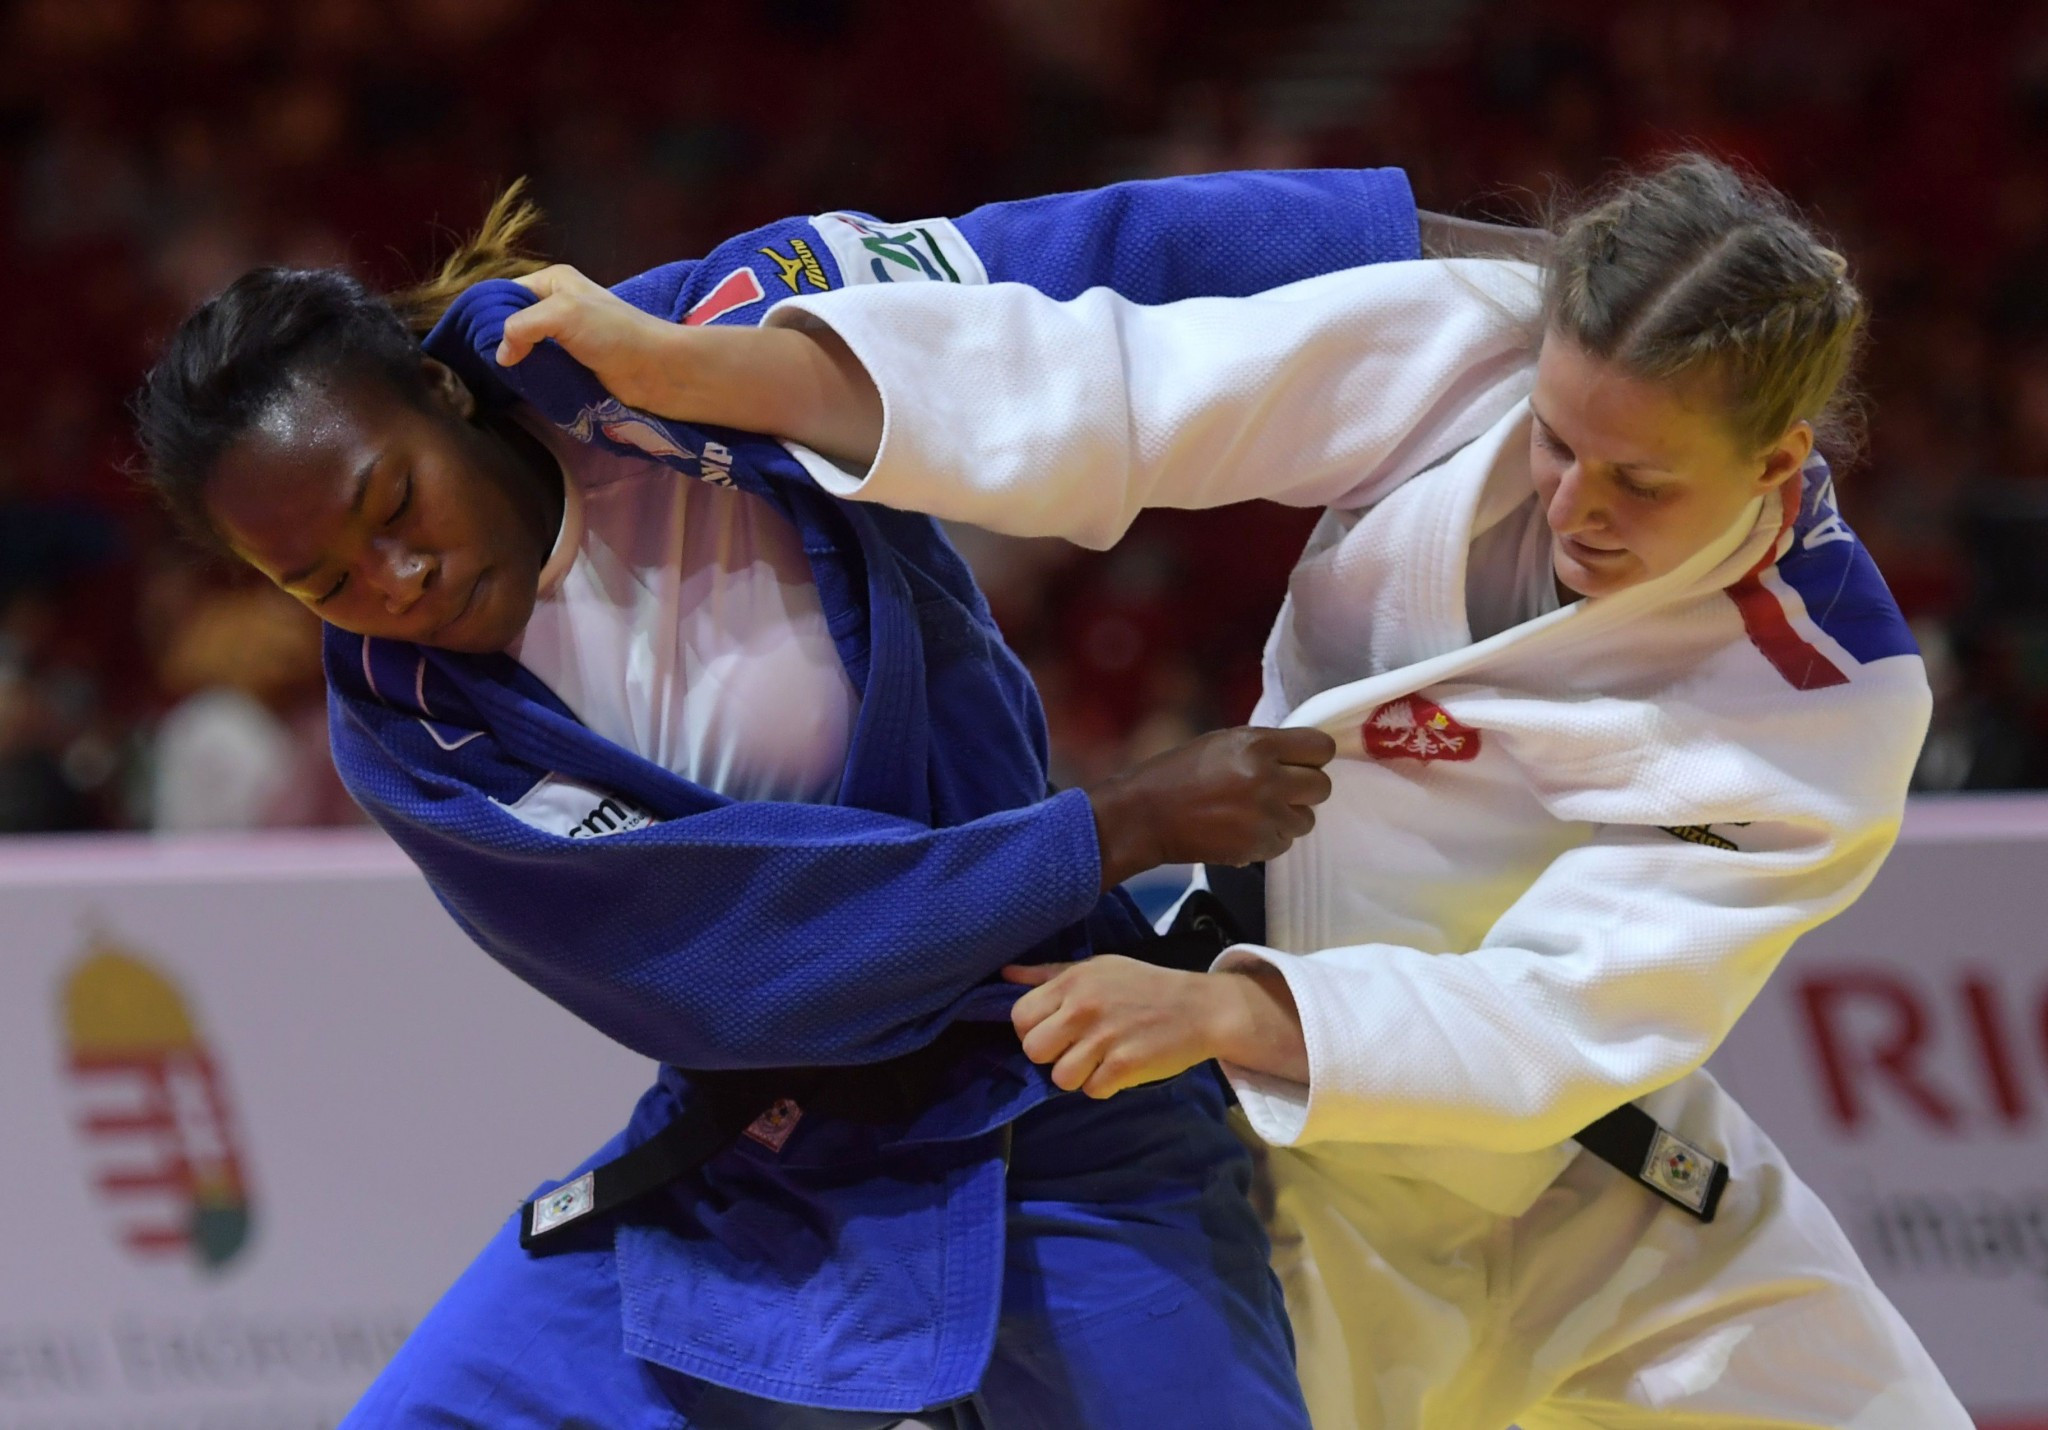 Clarisse Agbegnenou of Framce dethroned defending champion Tina Trstenjak to win the under 63kg title ©Getty Images